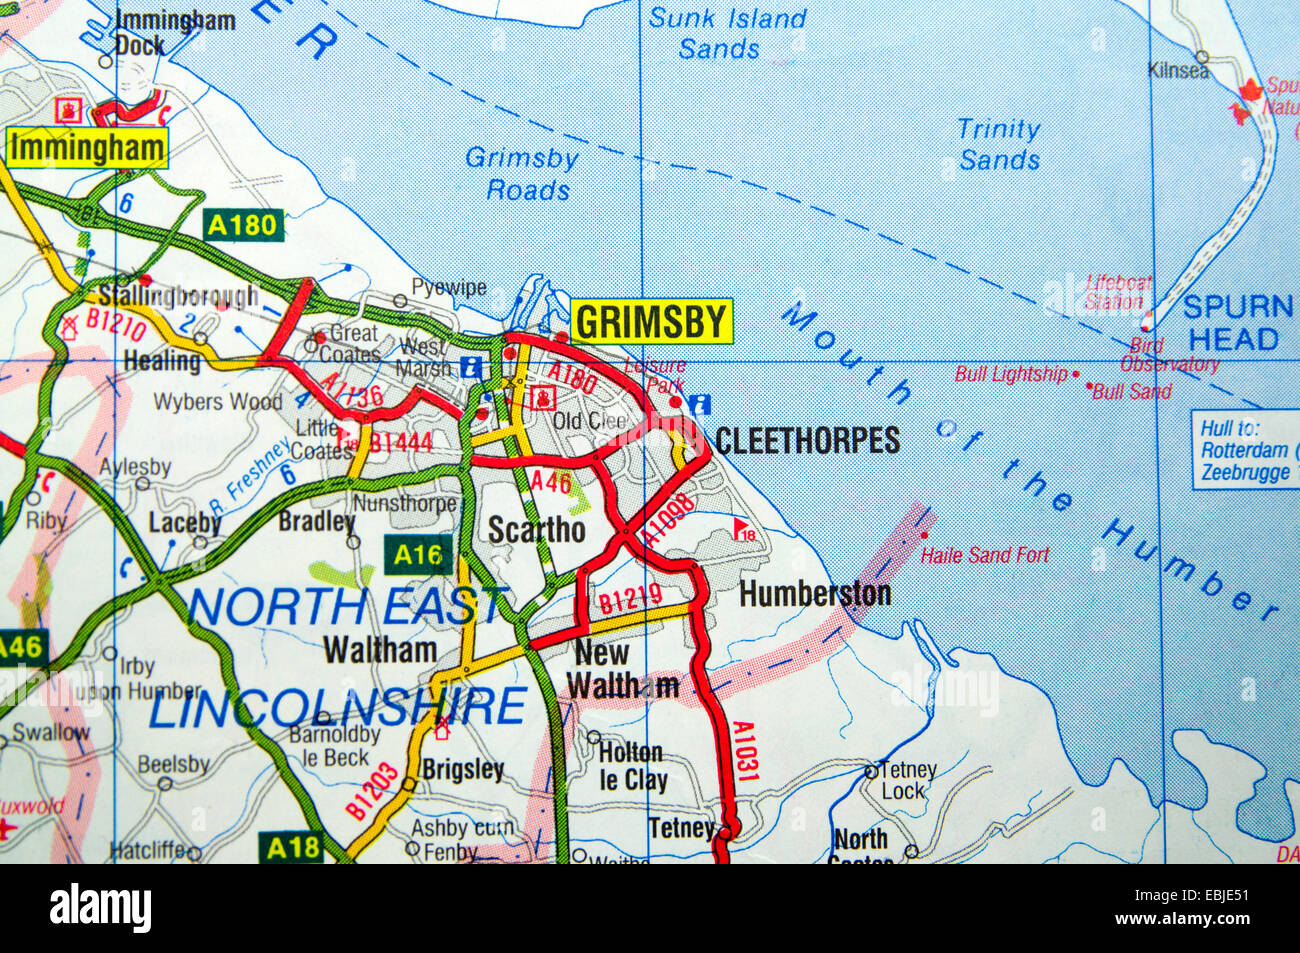 Road Map of Grimsby England Stock Photo 76008941 Alamy